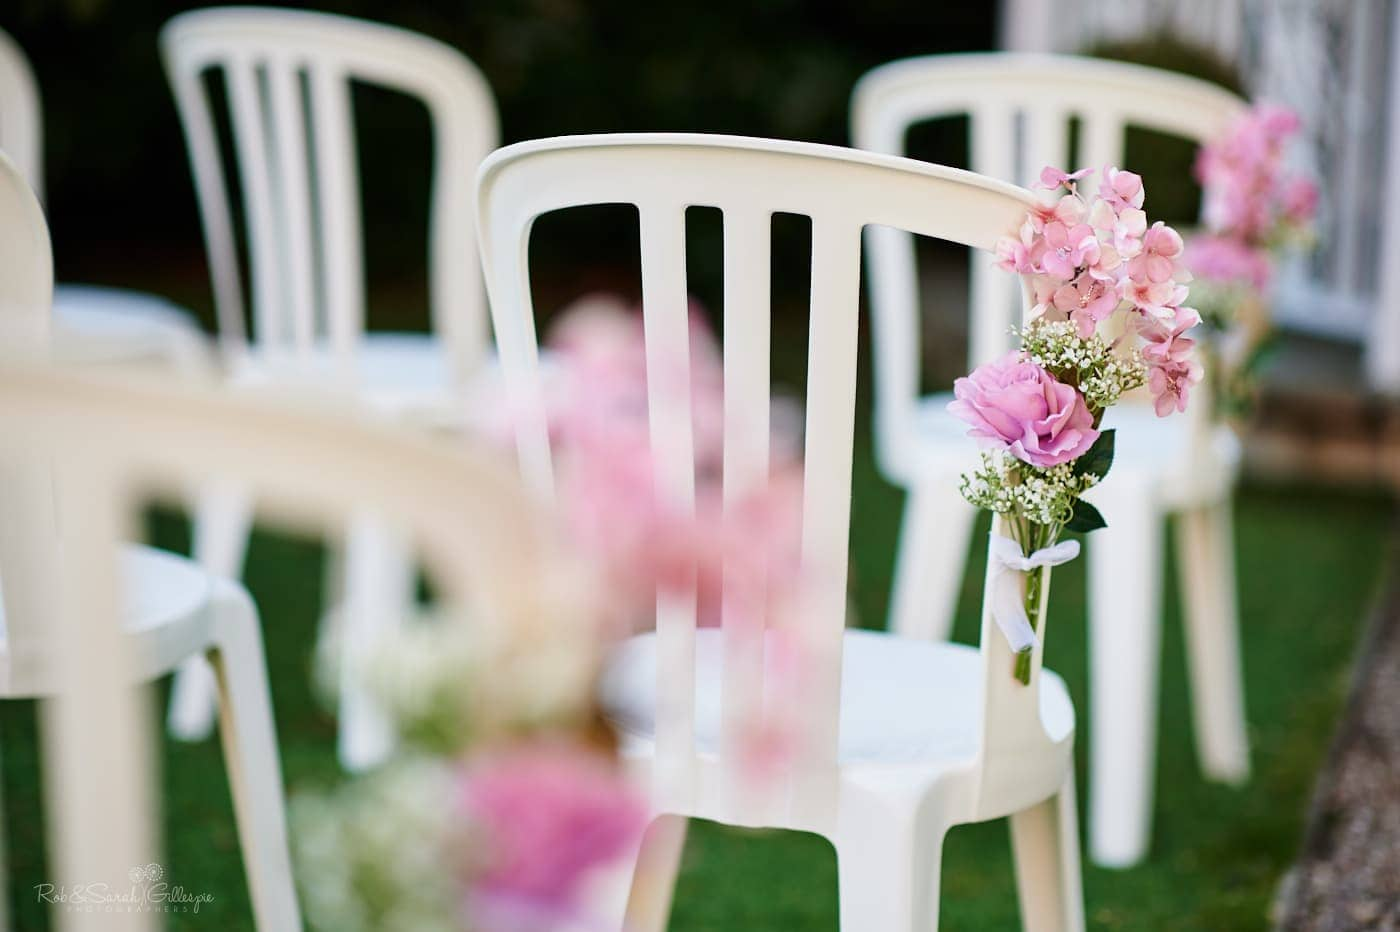 Pink flowers tied to white chairs ready for outdoor wedding ceremony